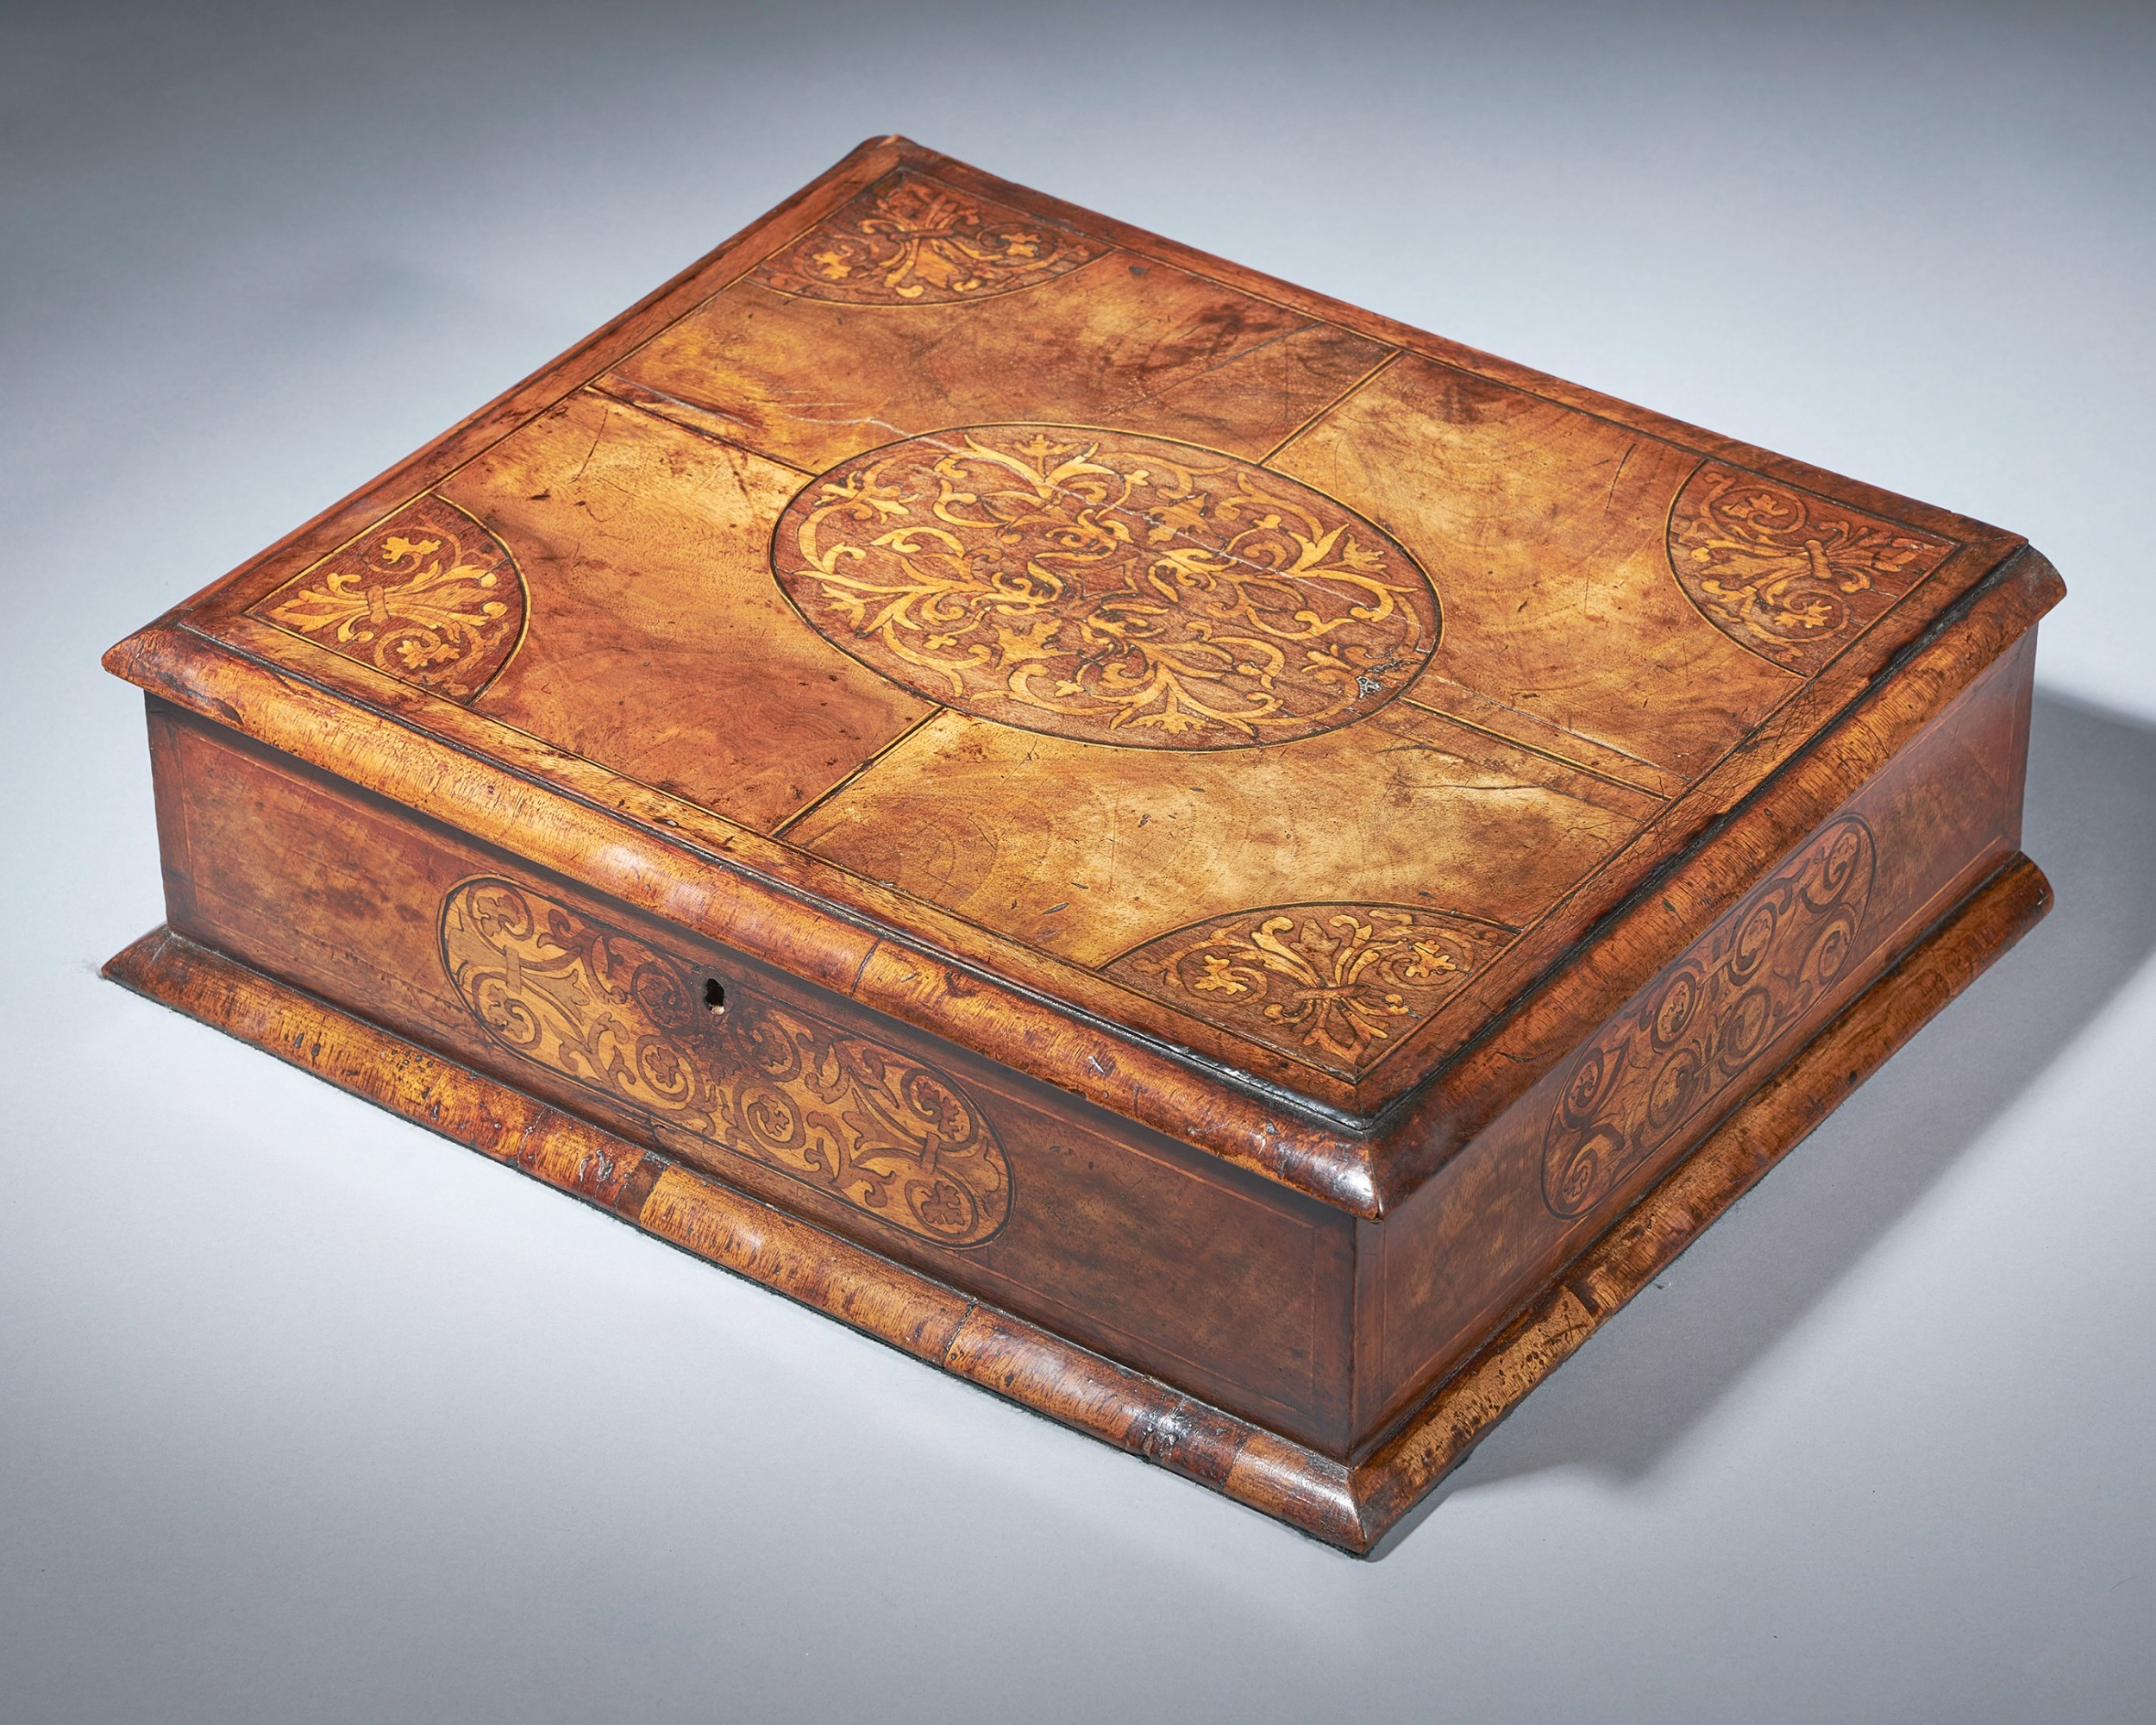 a fine and rare 17th century figured walnut and seaweed marquetry lace box